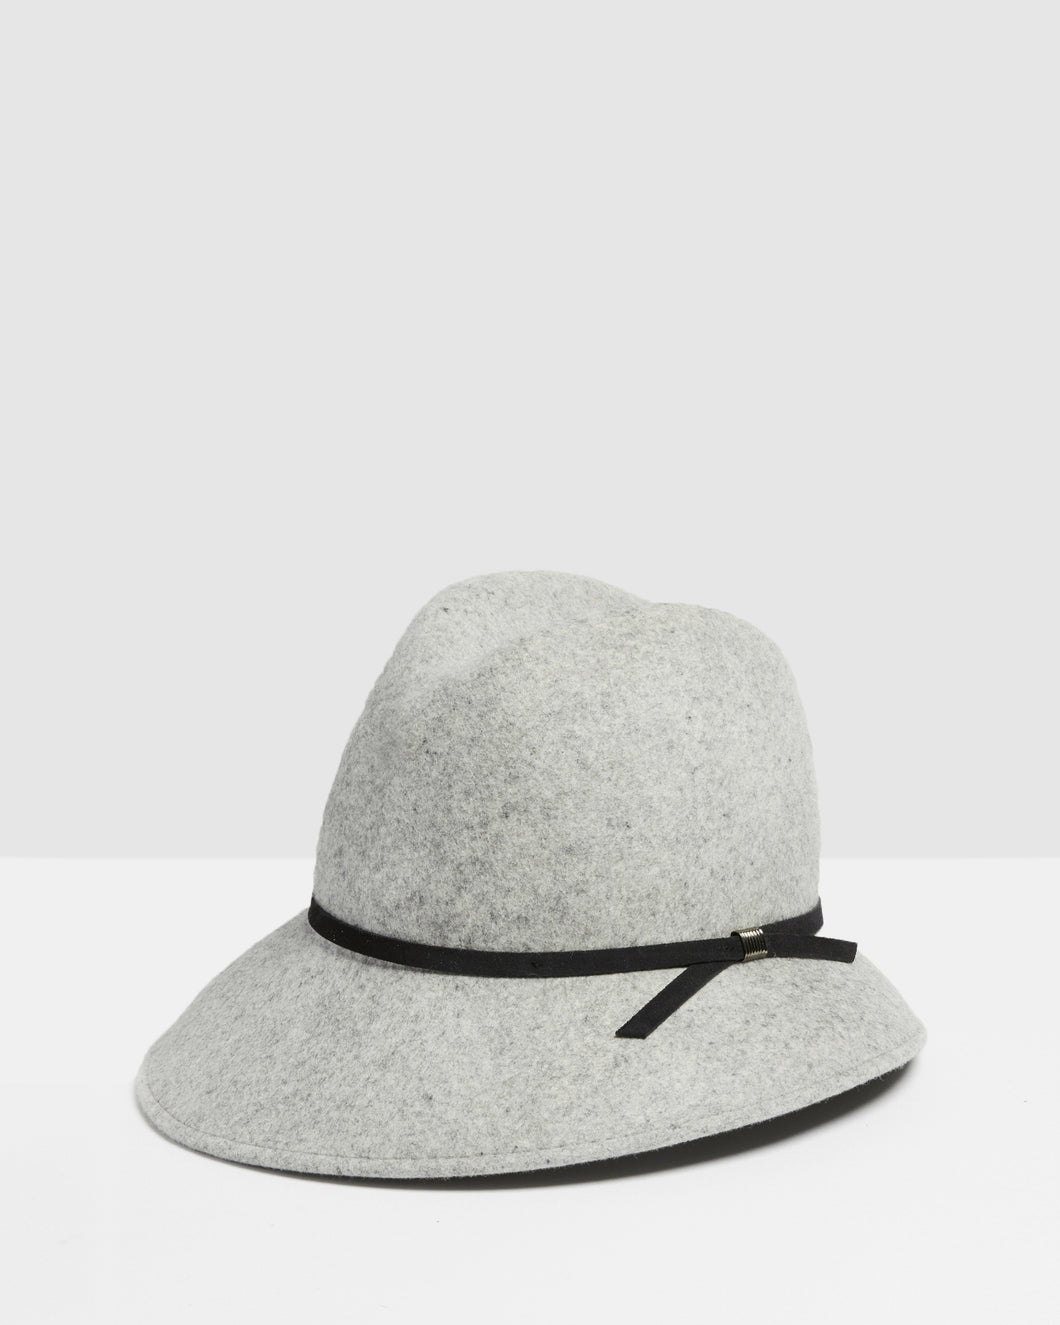 Kate and Confusion grey wool felt asymmetrical womens trilby hat